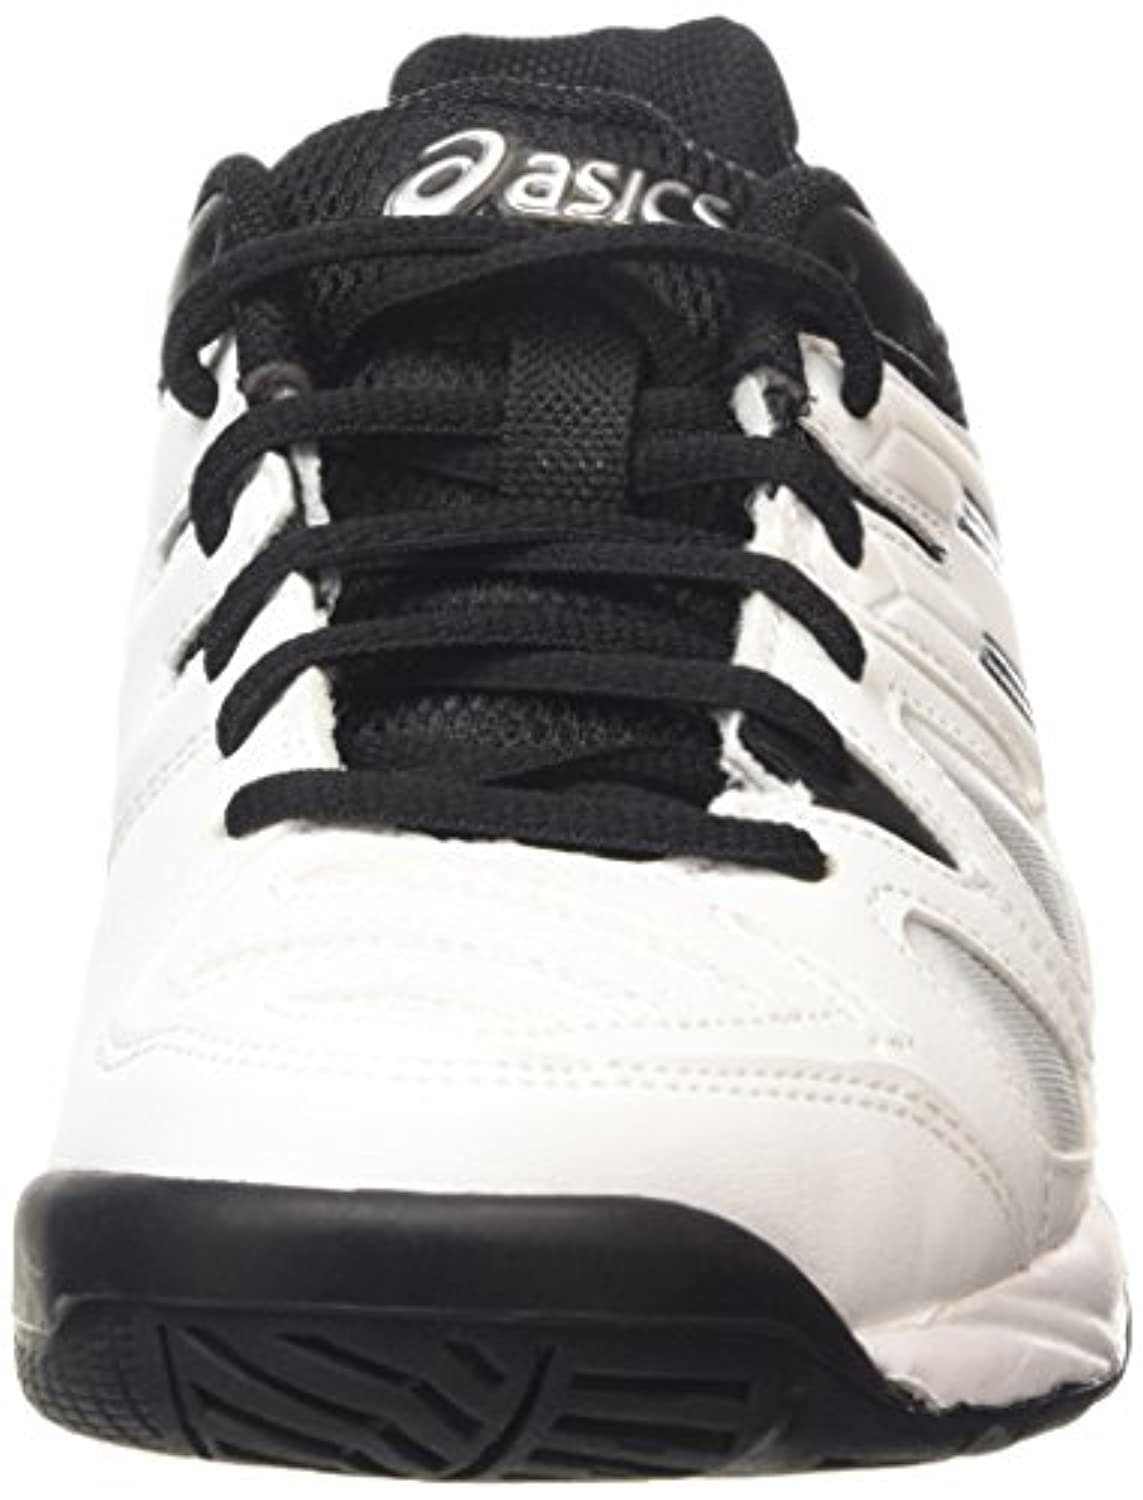 ASICS Gel-Game 5 Gs, Unisex Kids' Tennis Shoes, White (White/Black/Silver 0190), 1 UK (33 1/2 EU)